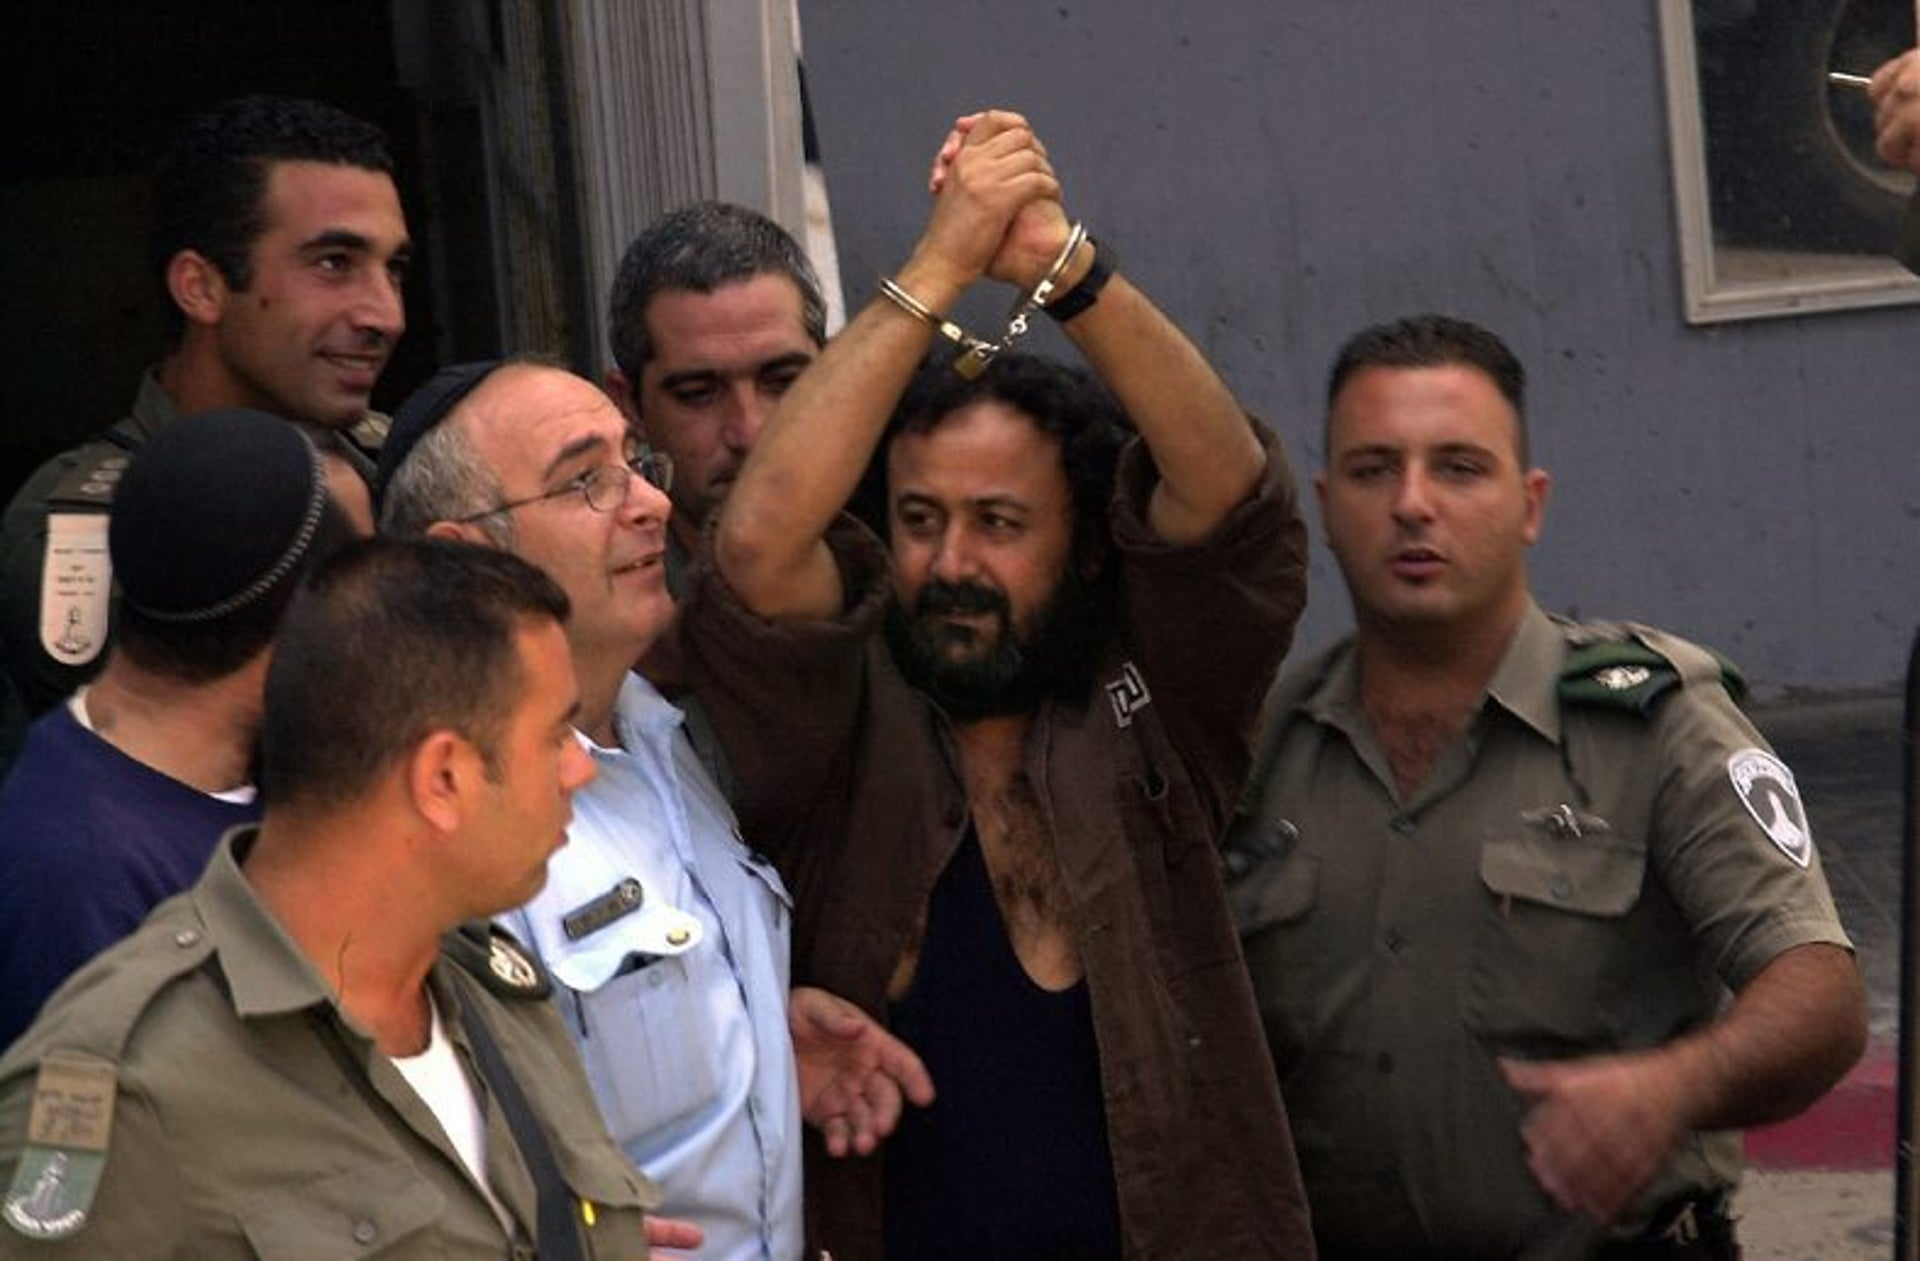 Jailed Palestinian leader Marwan Barghouti appearing in court in 2003.